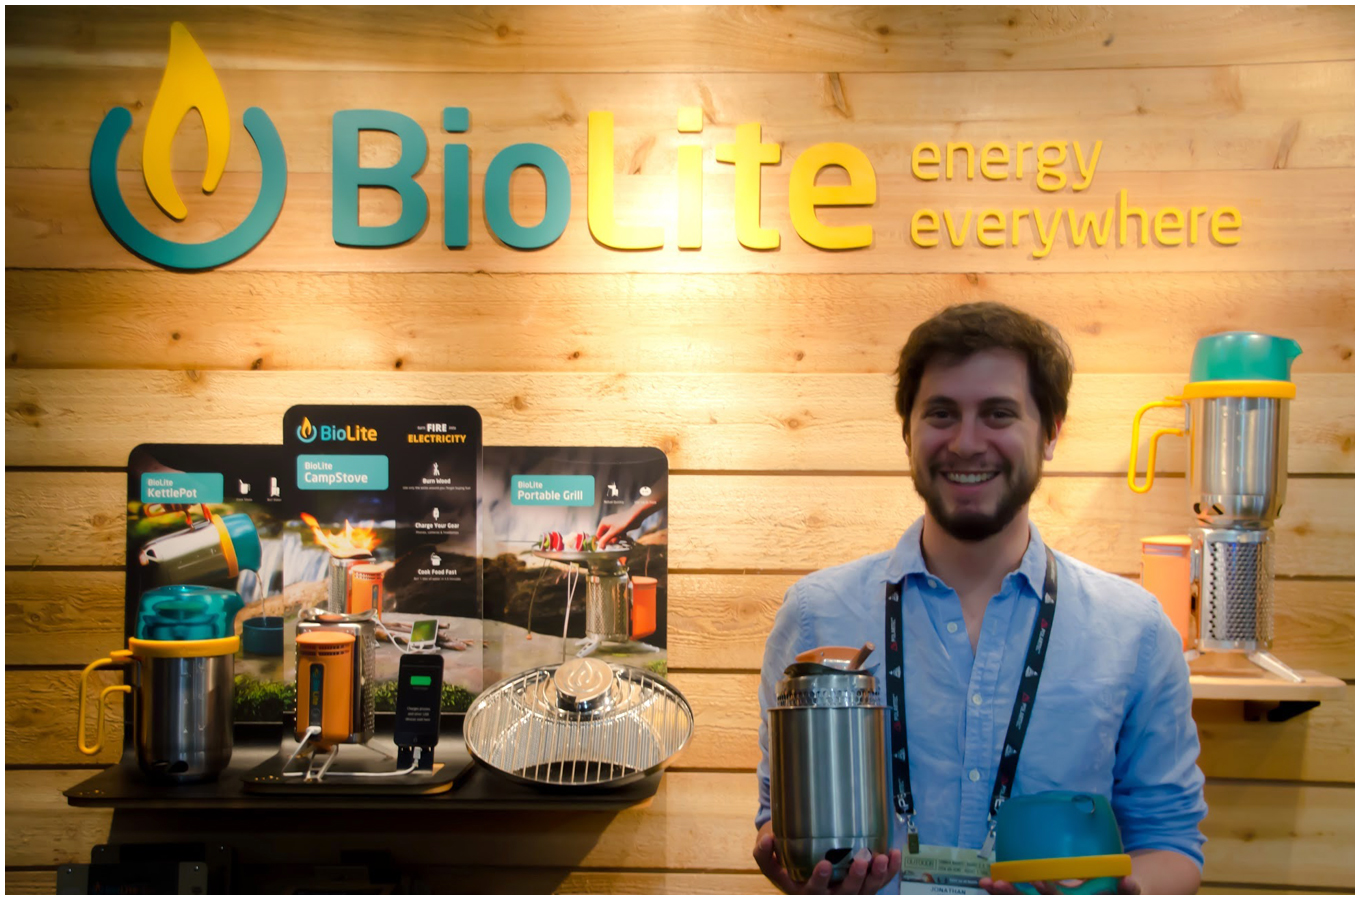 BioLite among companies at Summer OR 2014 tackling global issues